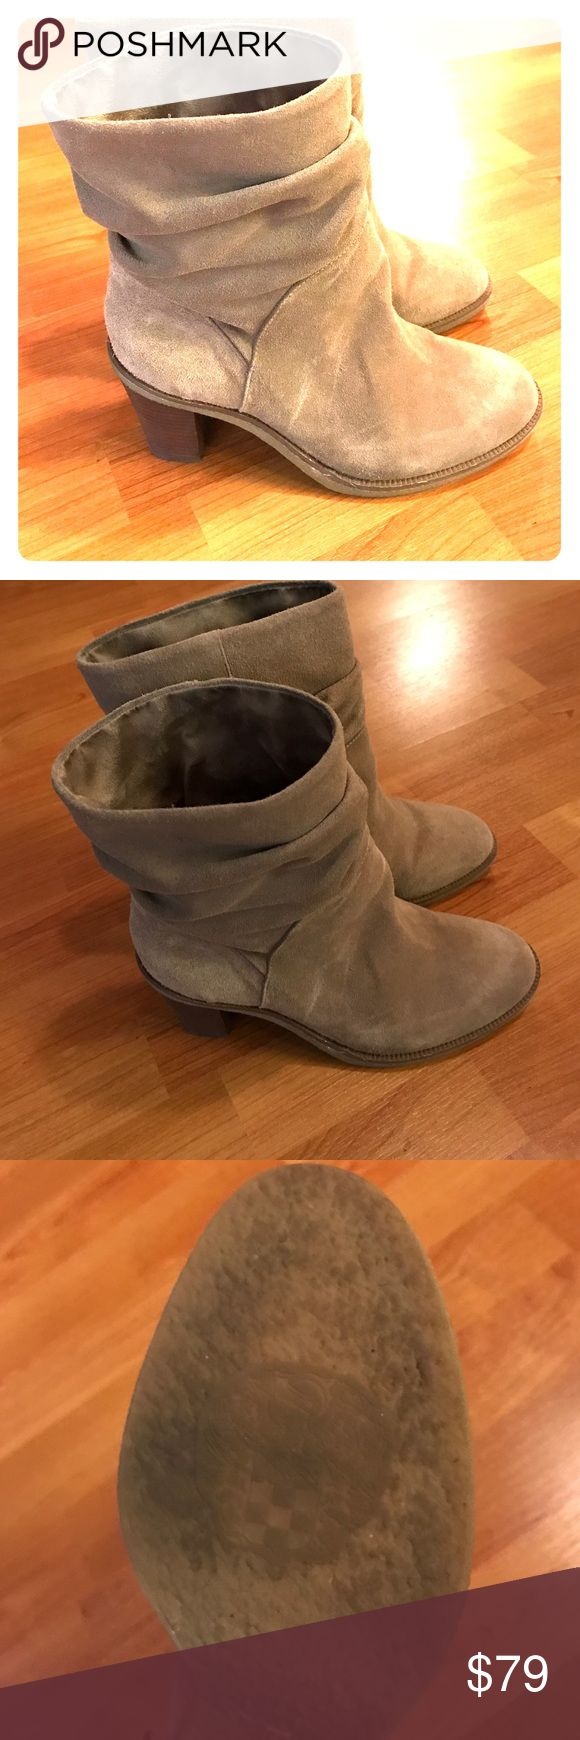 Vince Camino slouchy boots Super cute slouchy boot. Mushroom color. Very comfortable with a small heel and in great condition. Just some wear on the bottom as shown in pics. Vince Camuto Shoes Ankle Boots & Booties